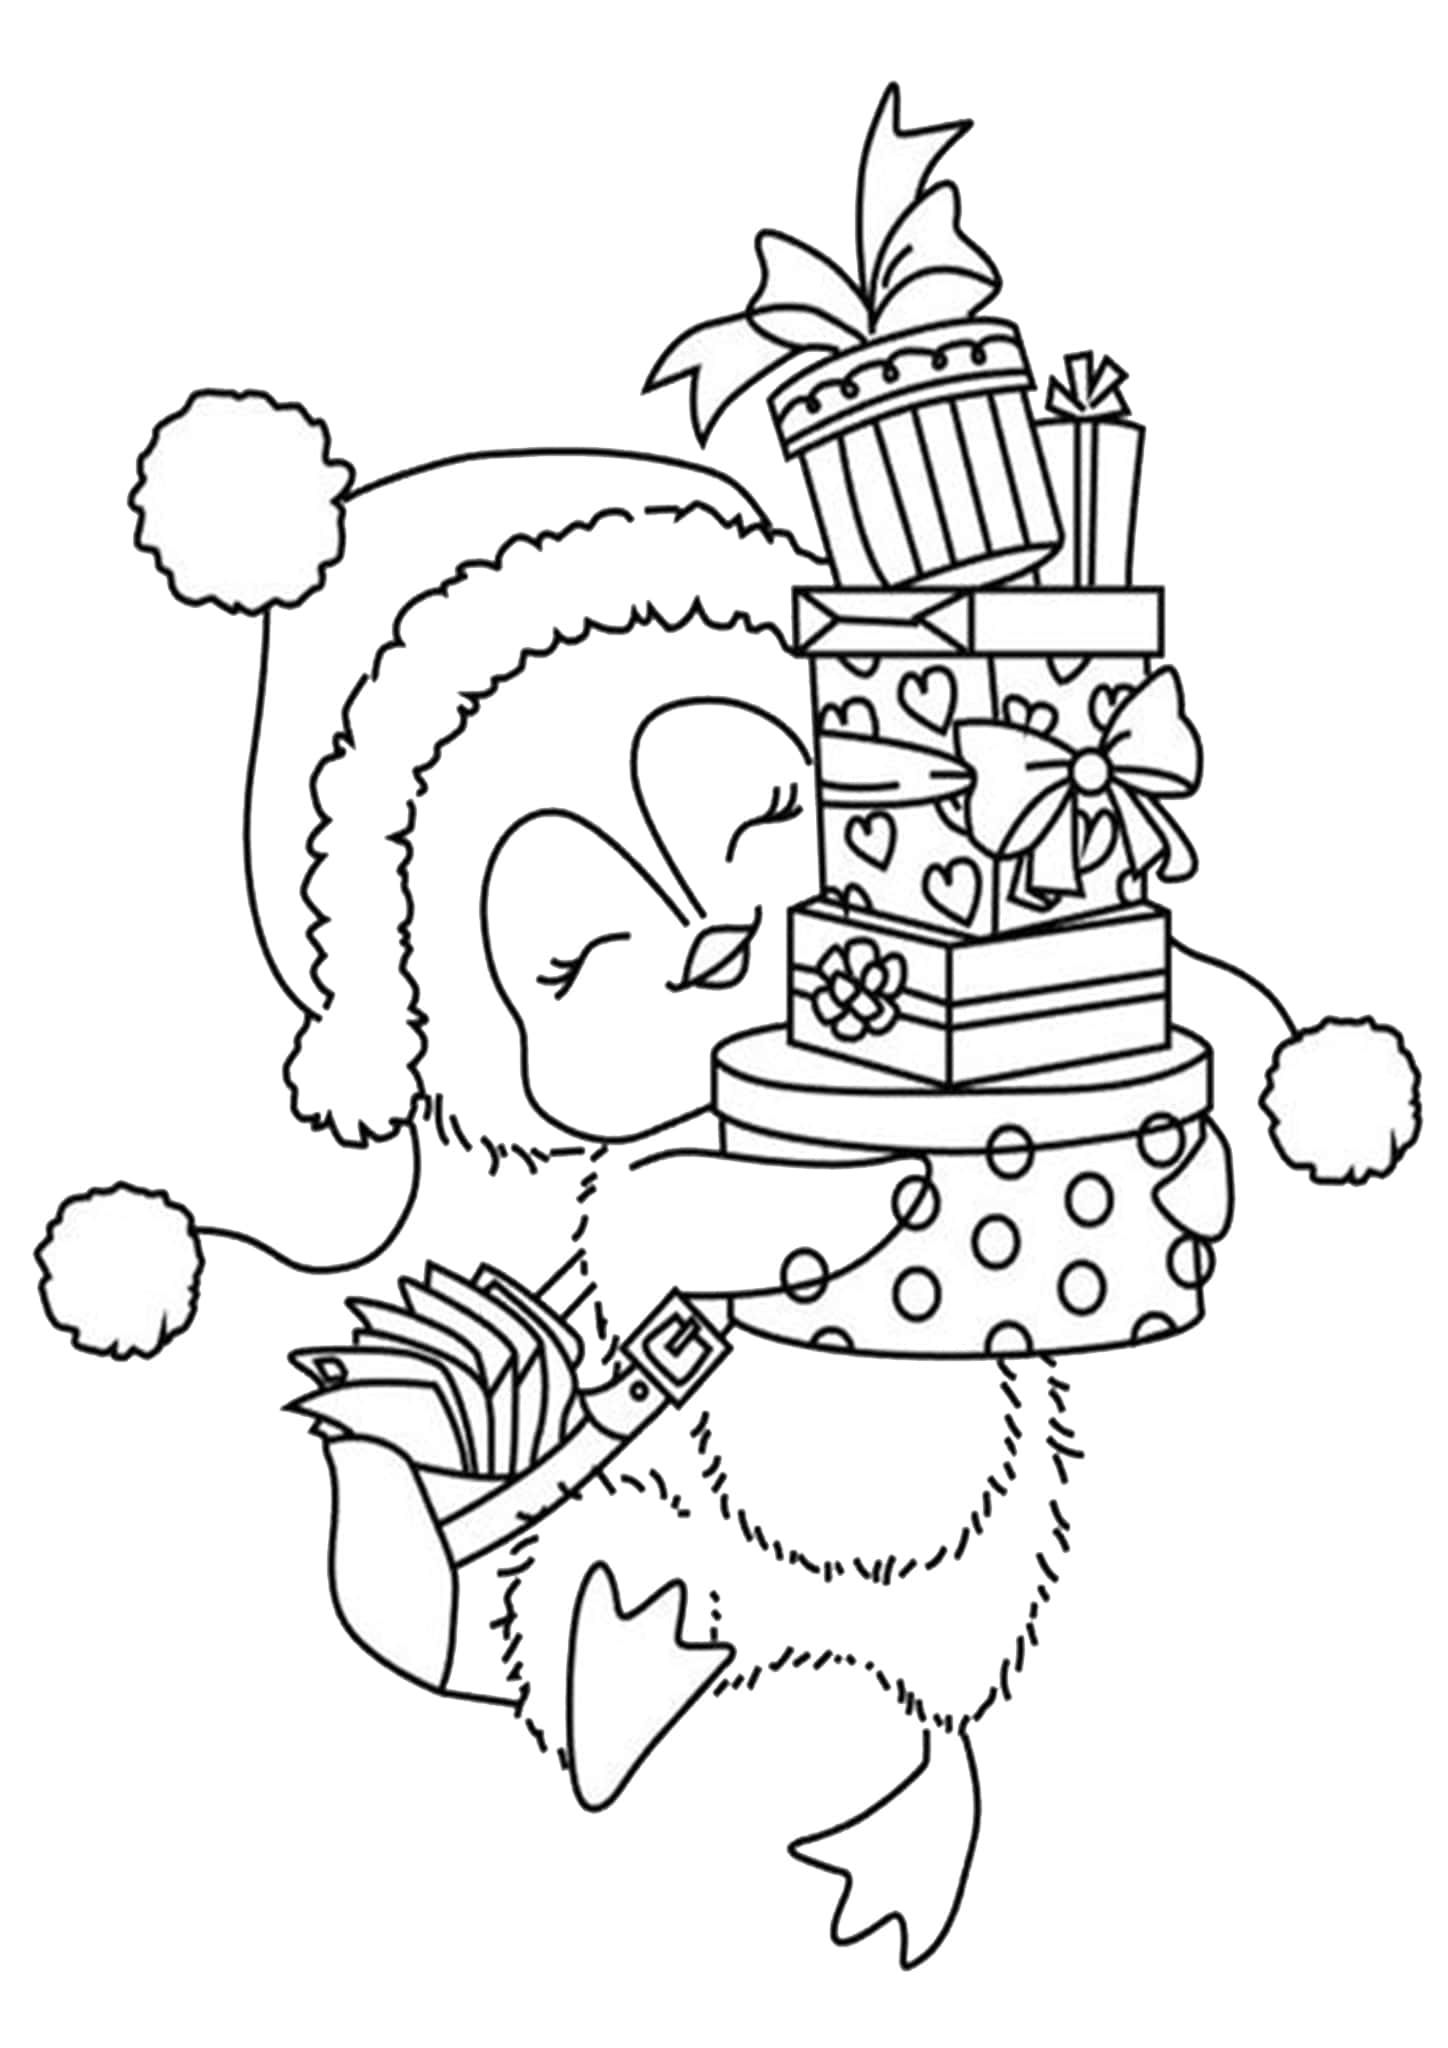 Free Easy To Print Baby Animal Coloring Pages Christmas Coloring Sheets Coloring Pages Christmas Coloring Pages